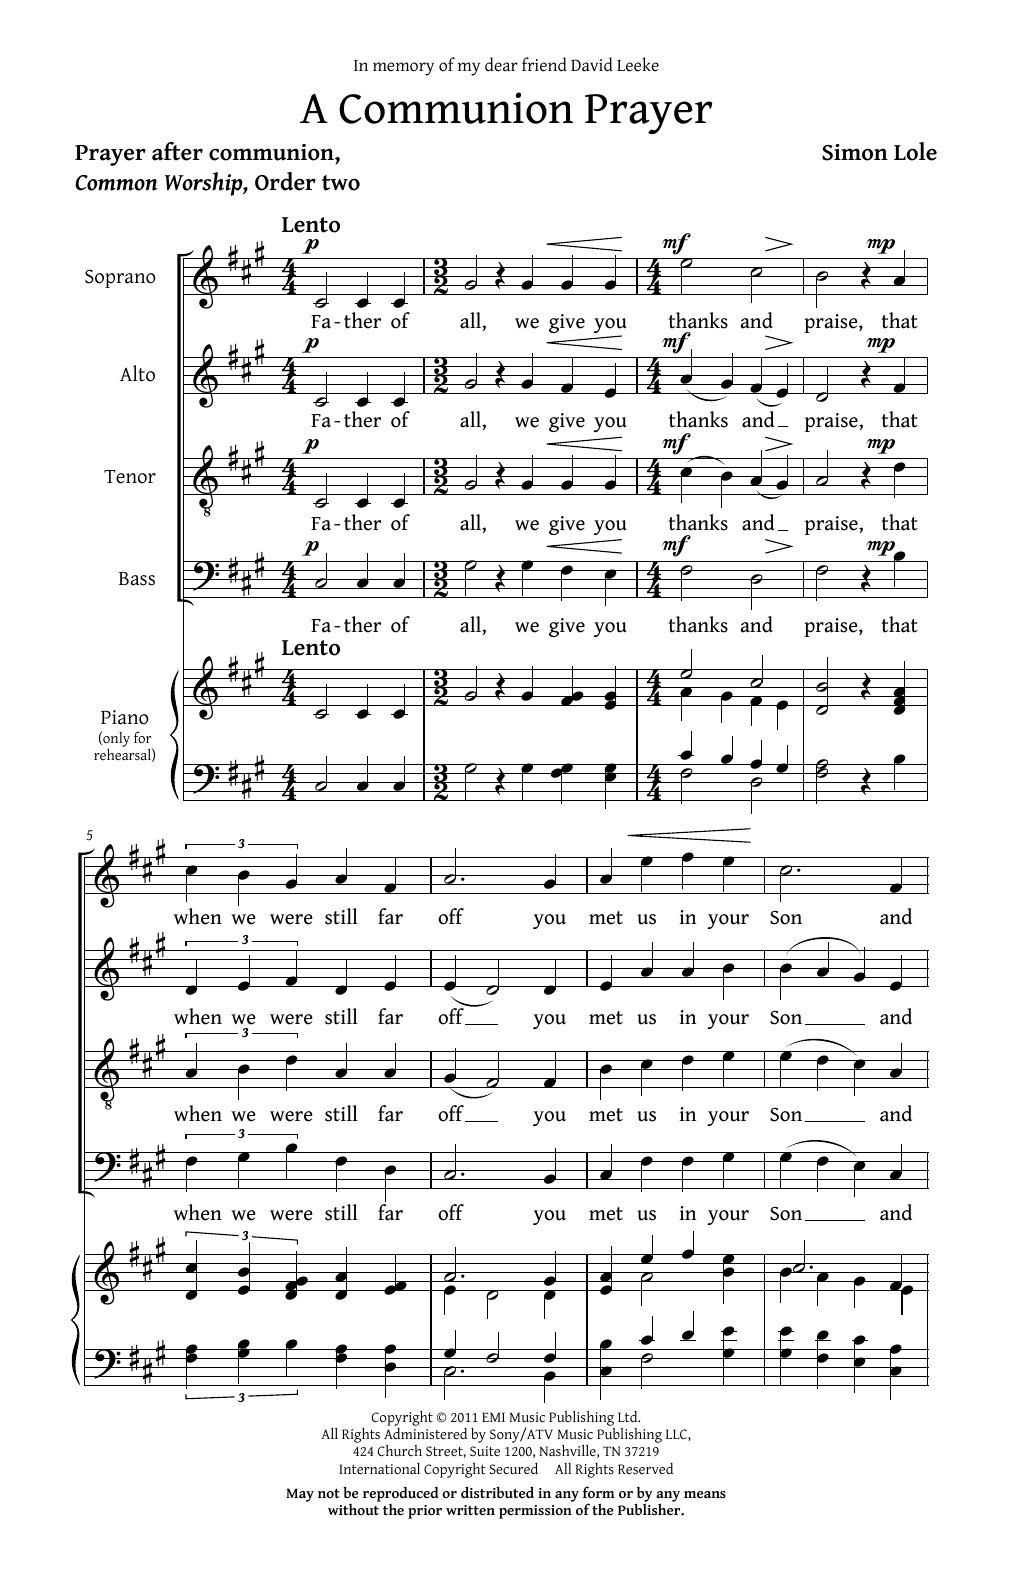 Simon Lole A Communion Prayer sheet music notes and chords. Download Printable PDF.